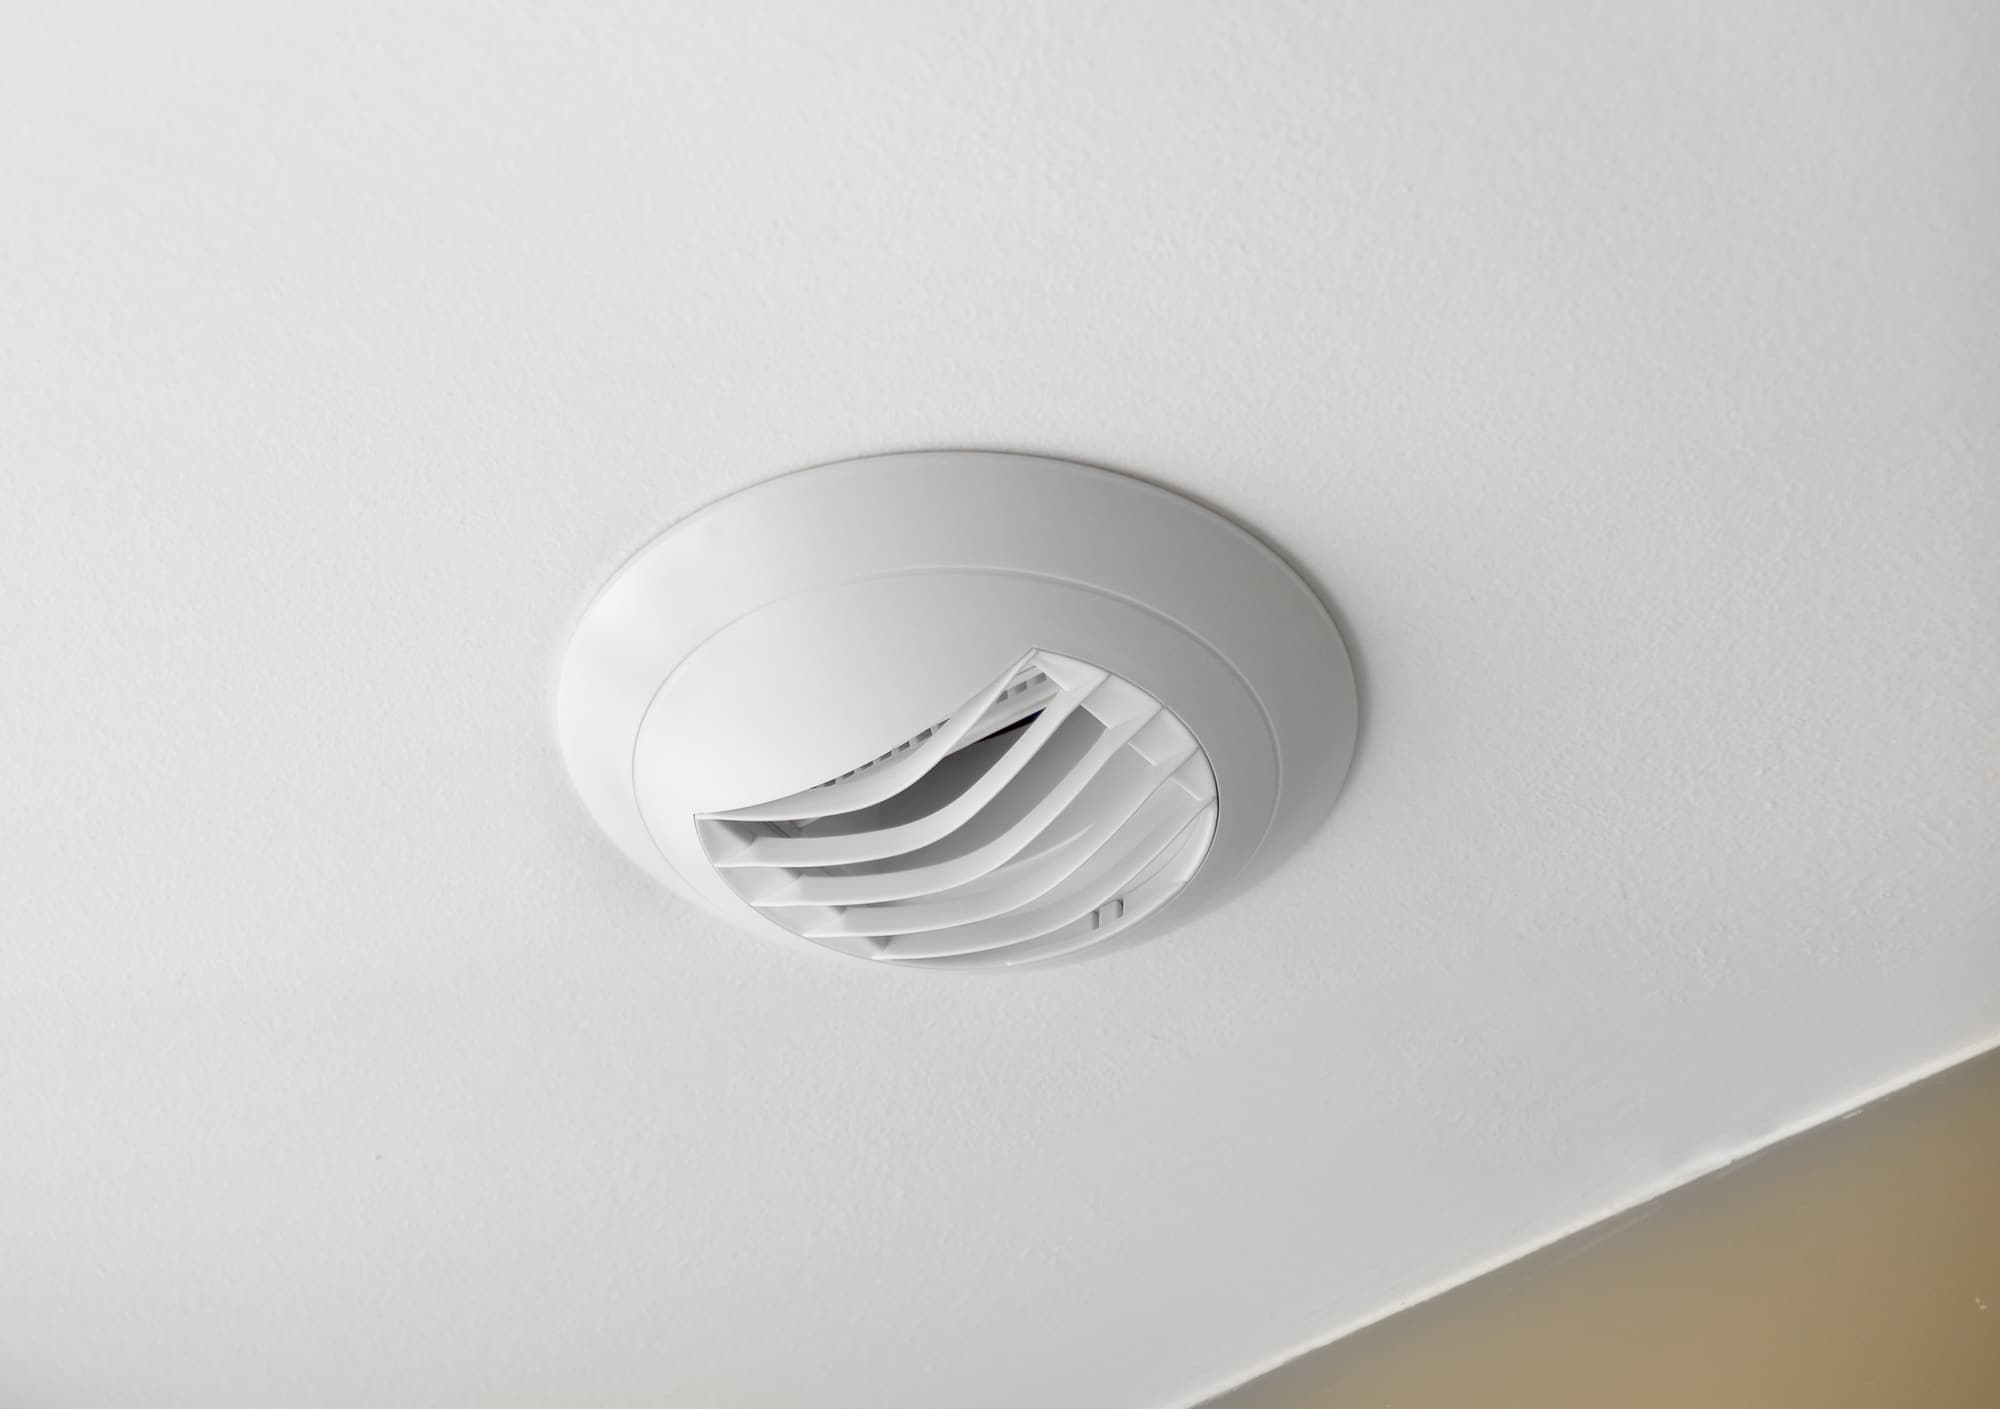 Best Bathroom Extractor Fan Reviews Uk 2021 Top 10 Picks Compared House Junkie